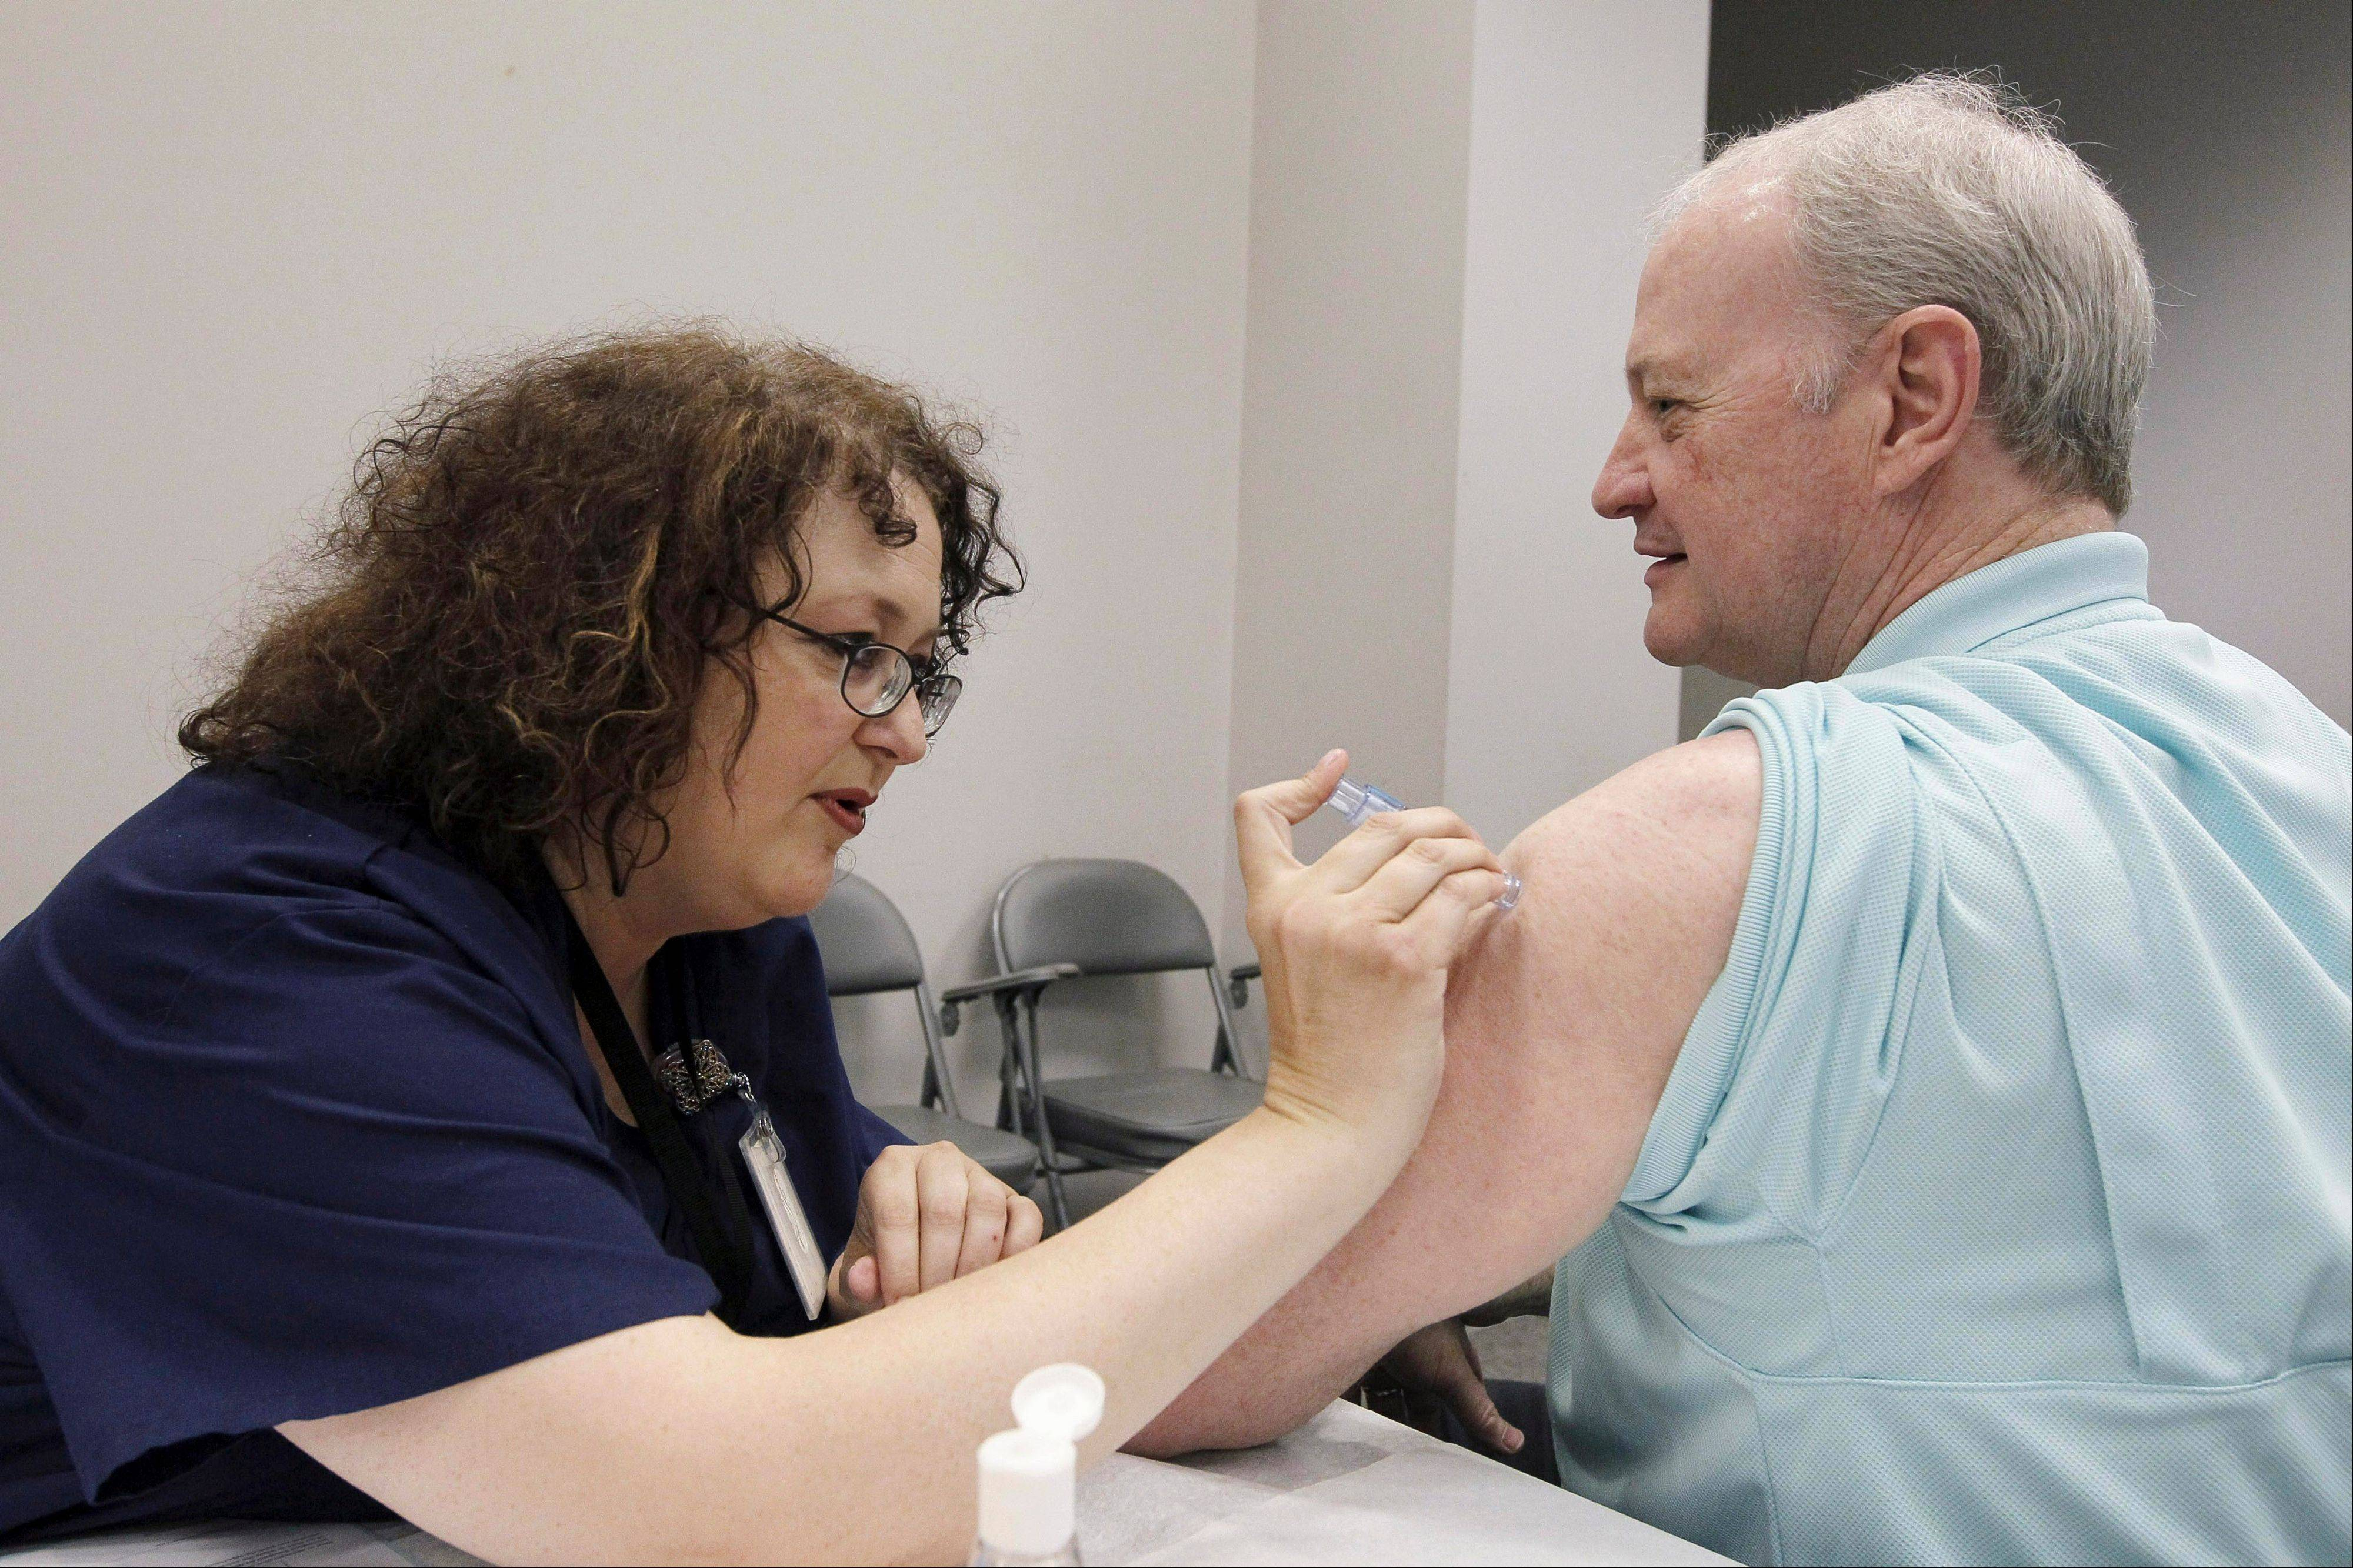 Bill Staples, a Mississippi Department of Health employee, is given a flu vaccine shot by registered nurse Rosemary Jones, also with the health department, in Jackson, Miss.